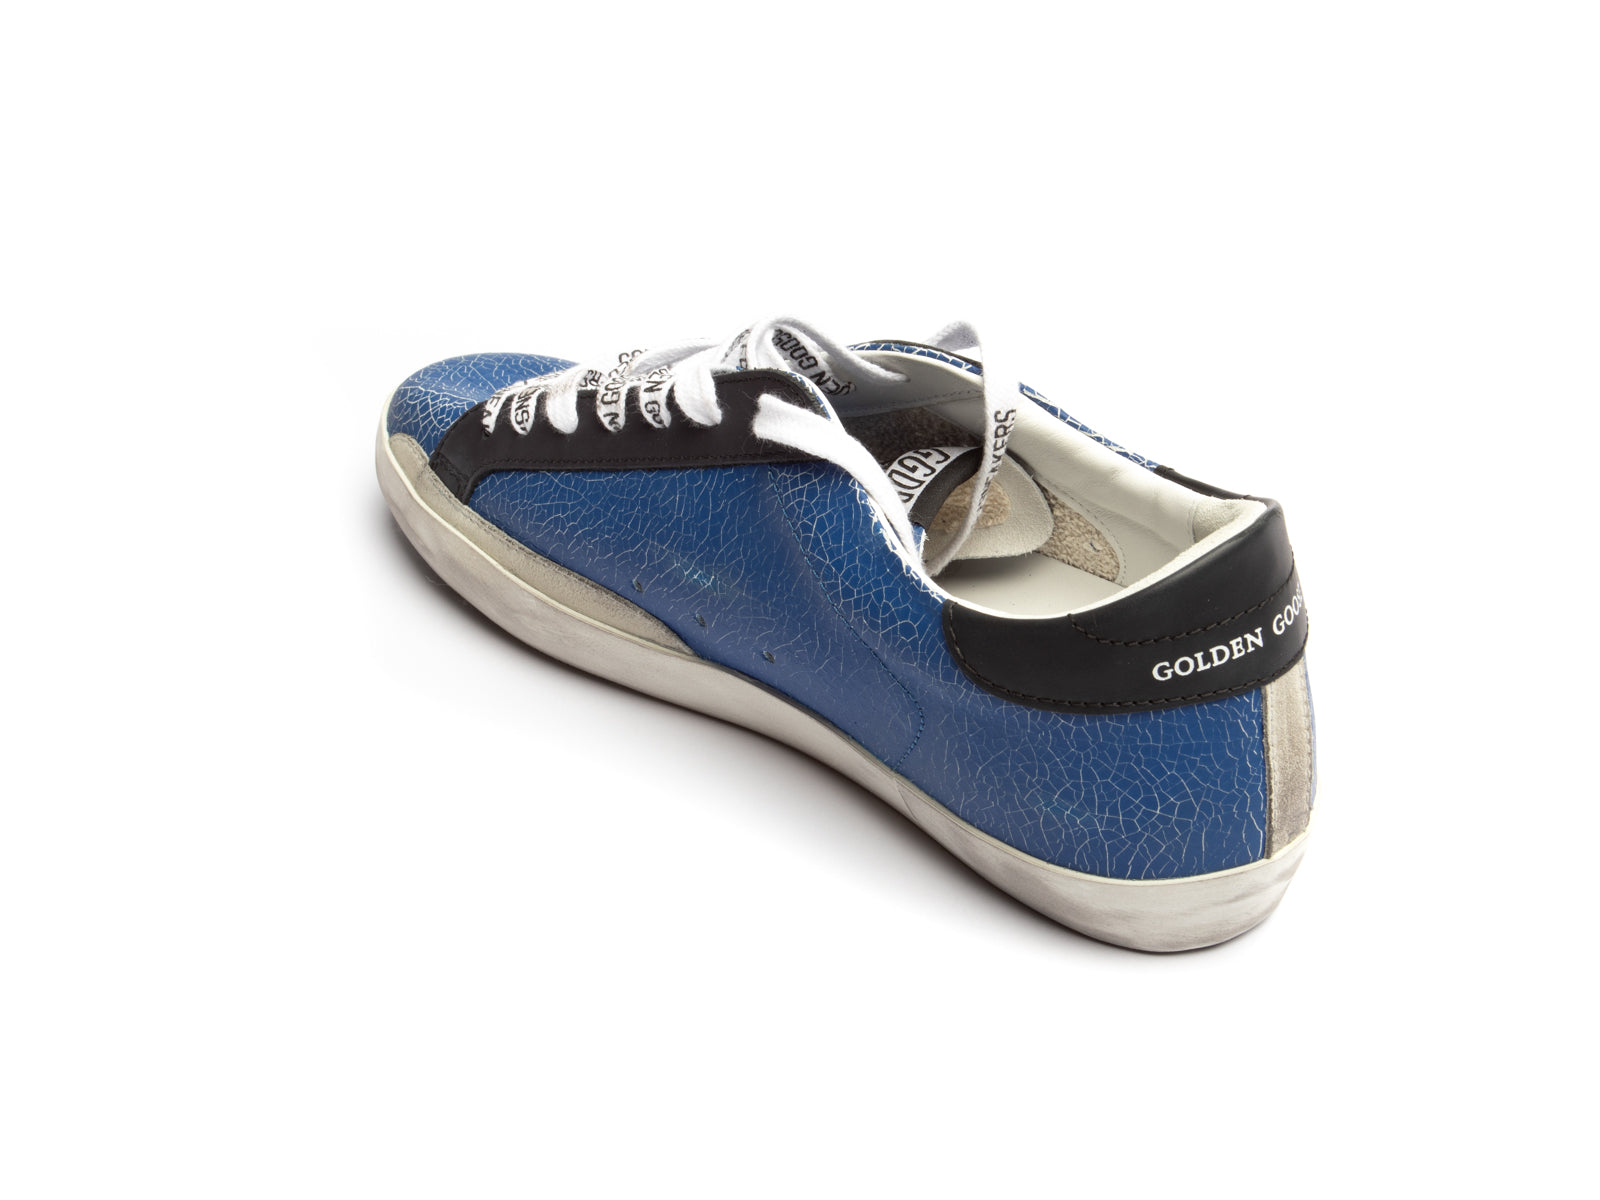 Superstar Sneaker in Blue Ice, Black and Suede Star